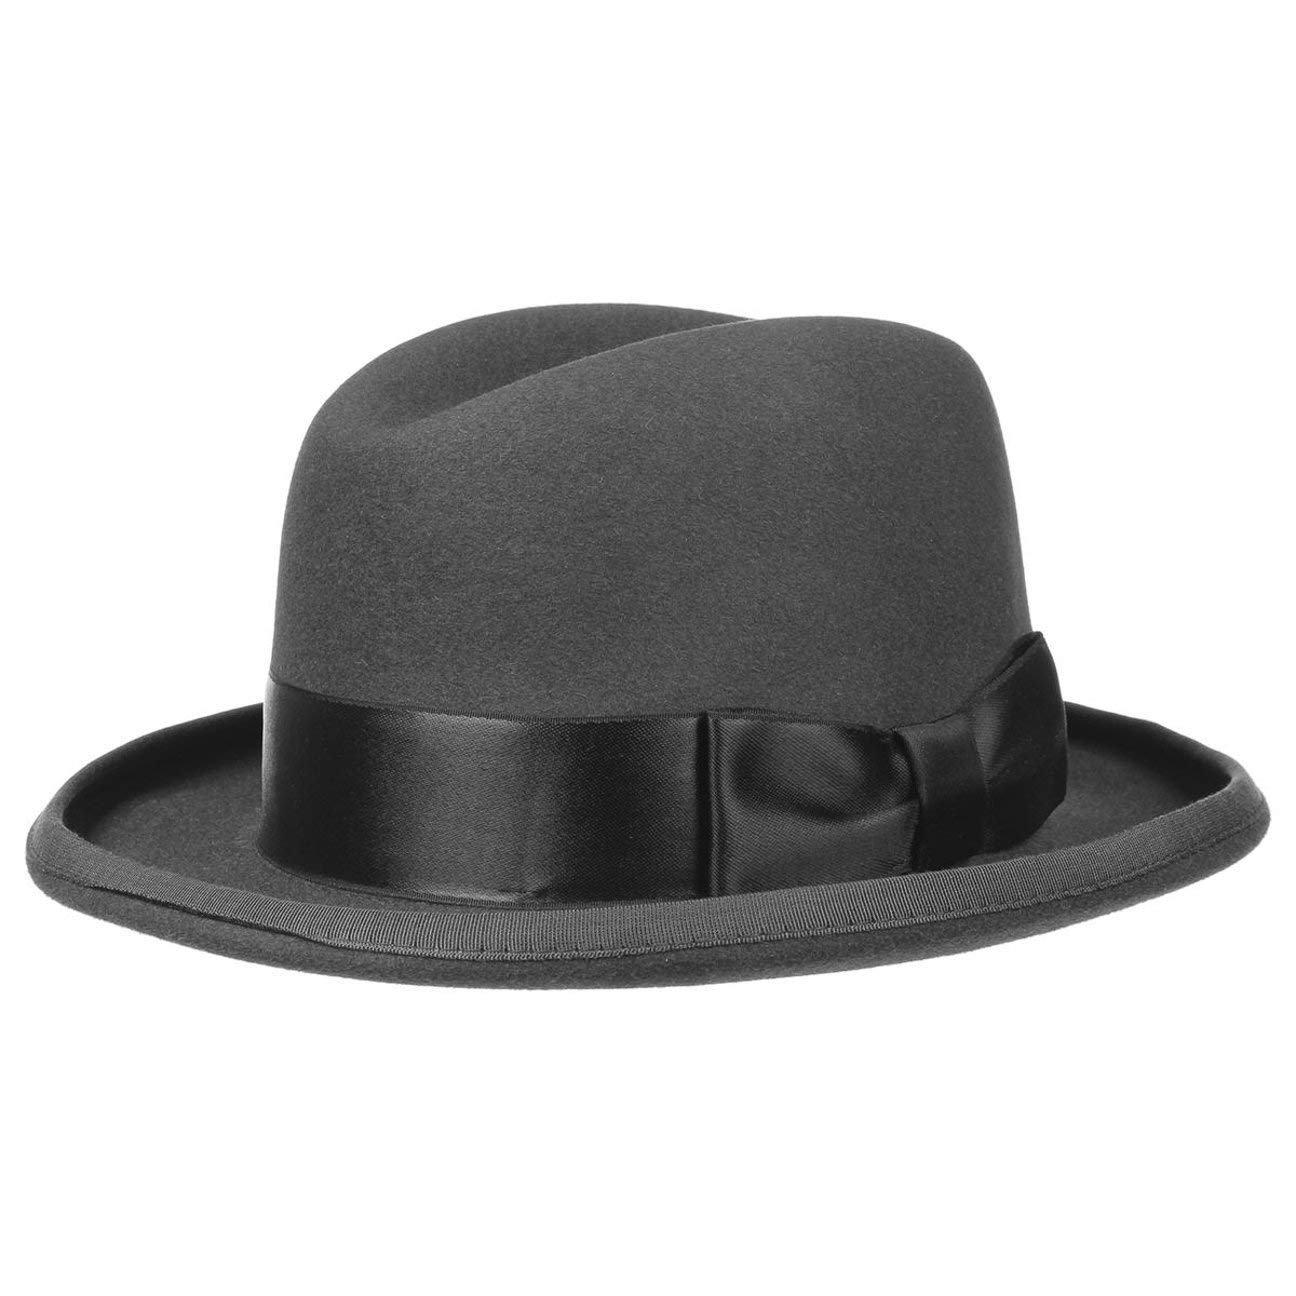 1920s Mens Hats & Caps | Gatsby, Peaky Blinders, Gangster Stetson Saks Homburg Fur Felt Hat Women/Men | Made in The EU Men´s with Lining Grosgrain Band Piping Summer-Winter £139.00 AT vintagedancer.com